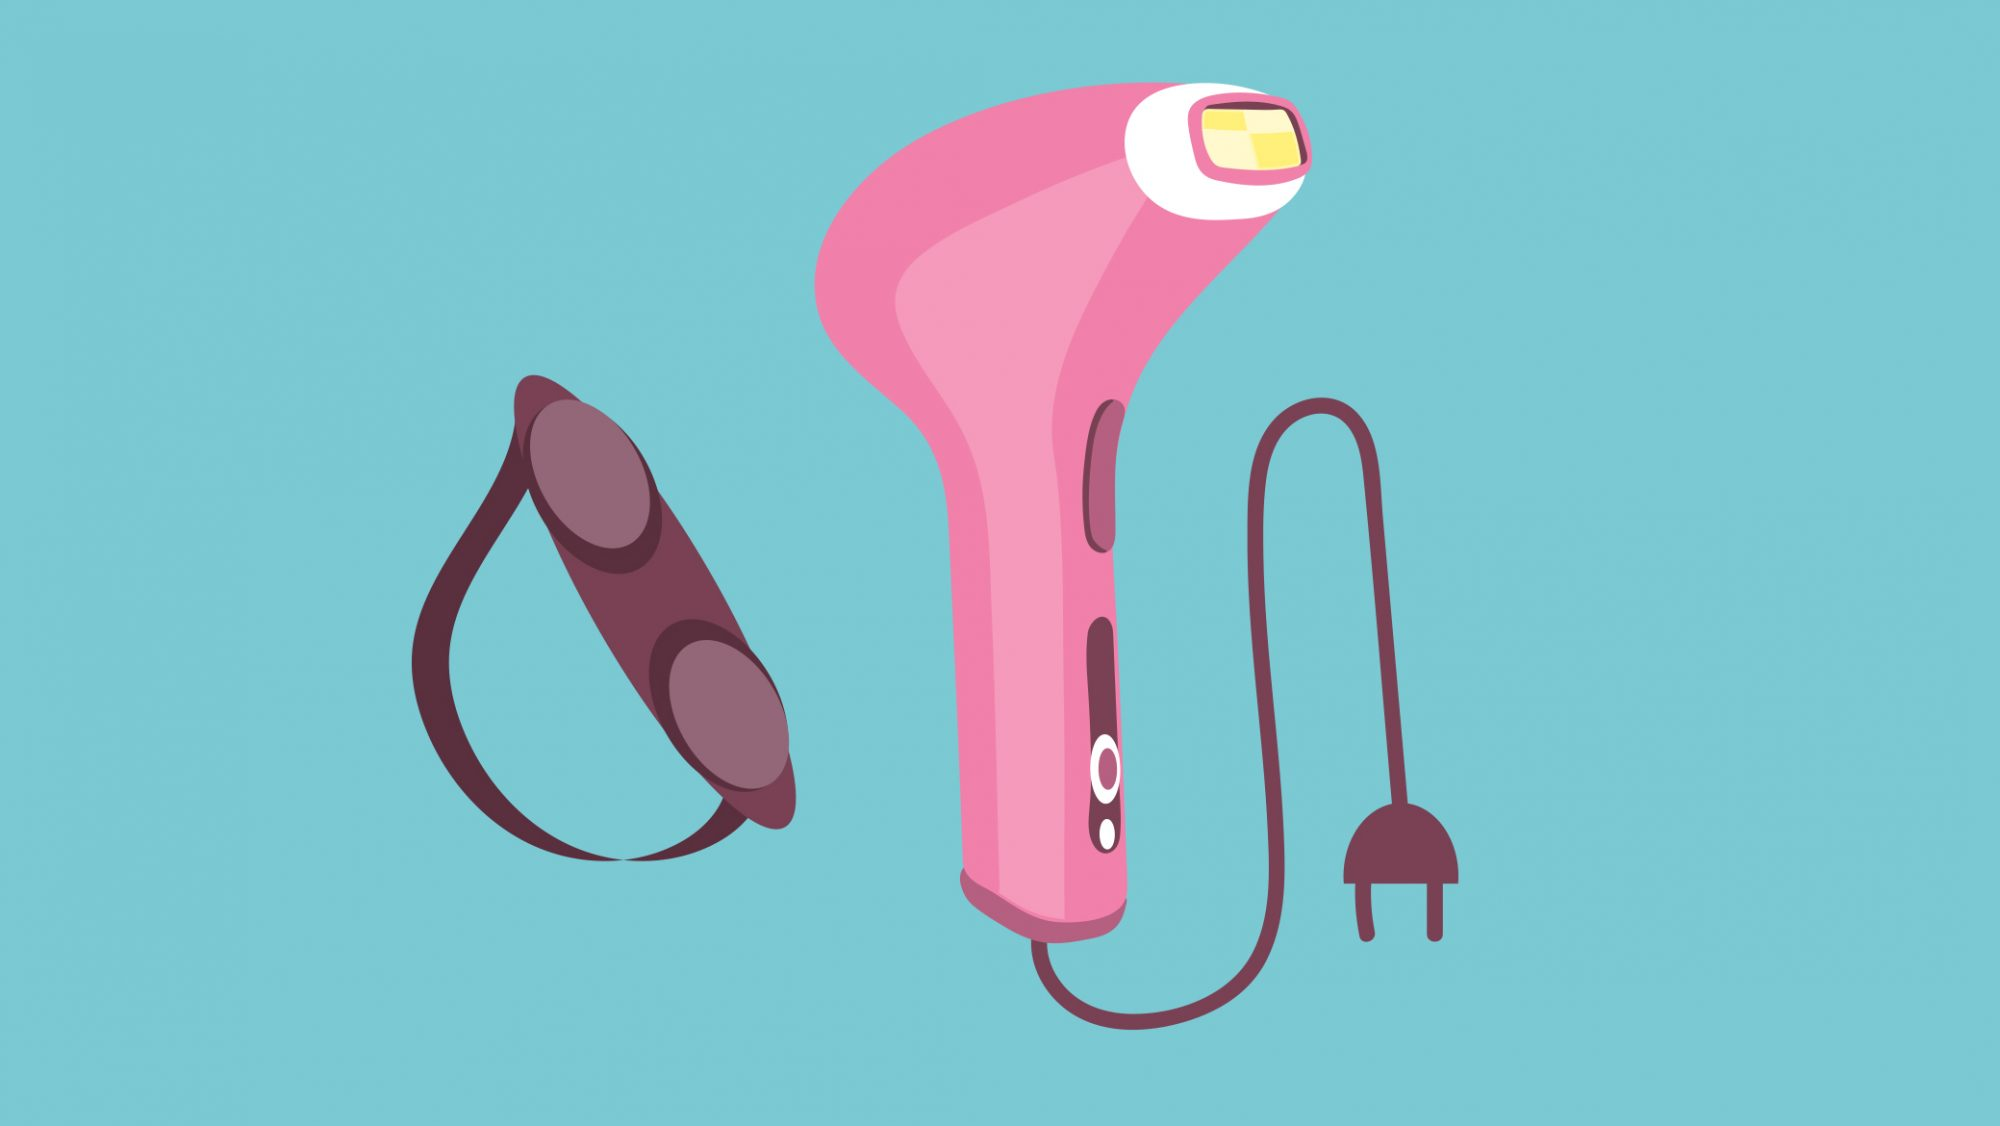 Thinking About Getting Laser Hair Removal? Read This Before Booking Your Appointment